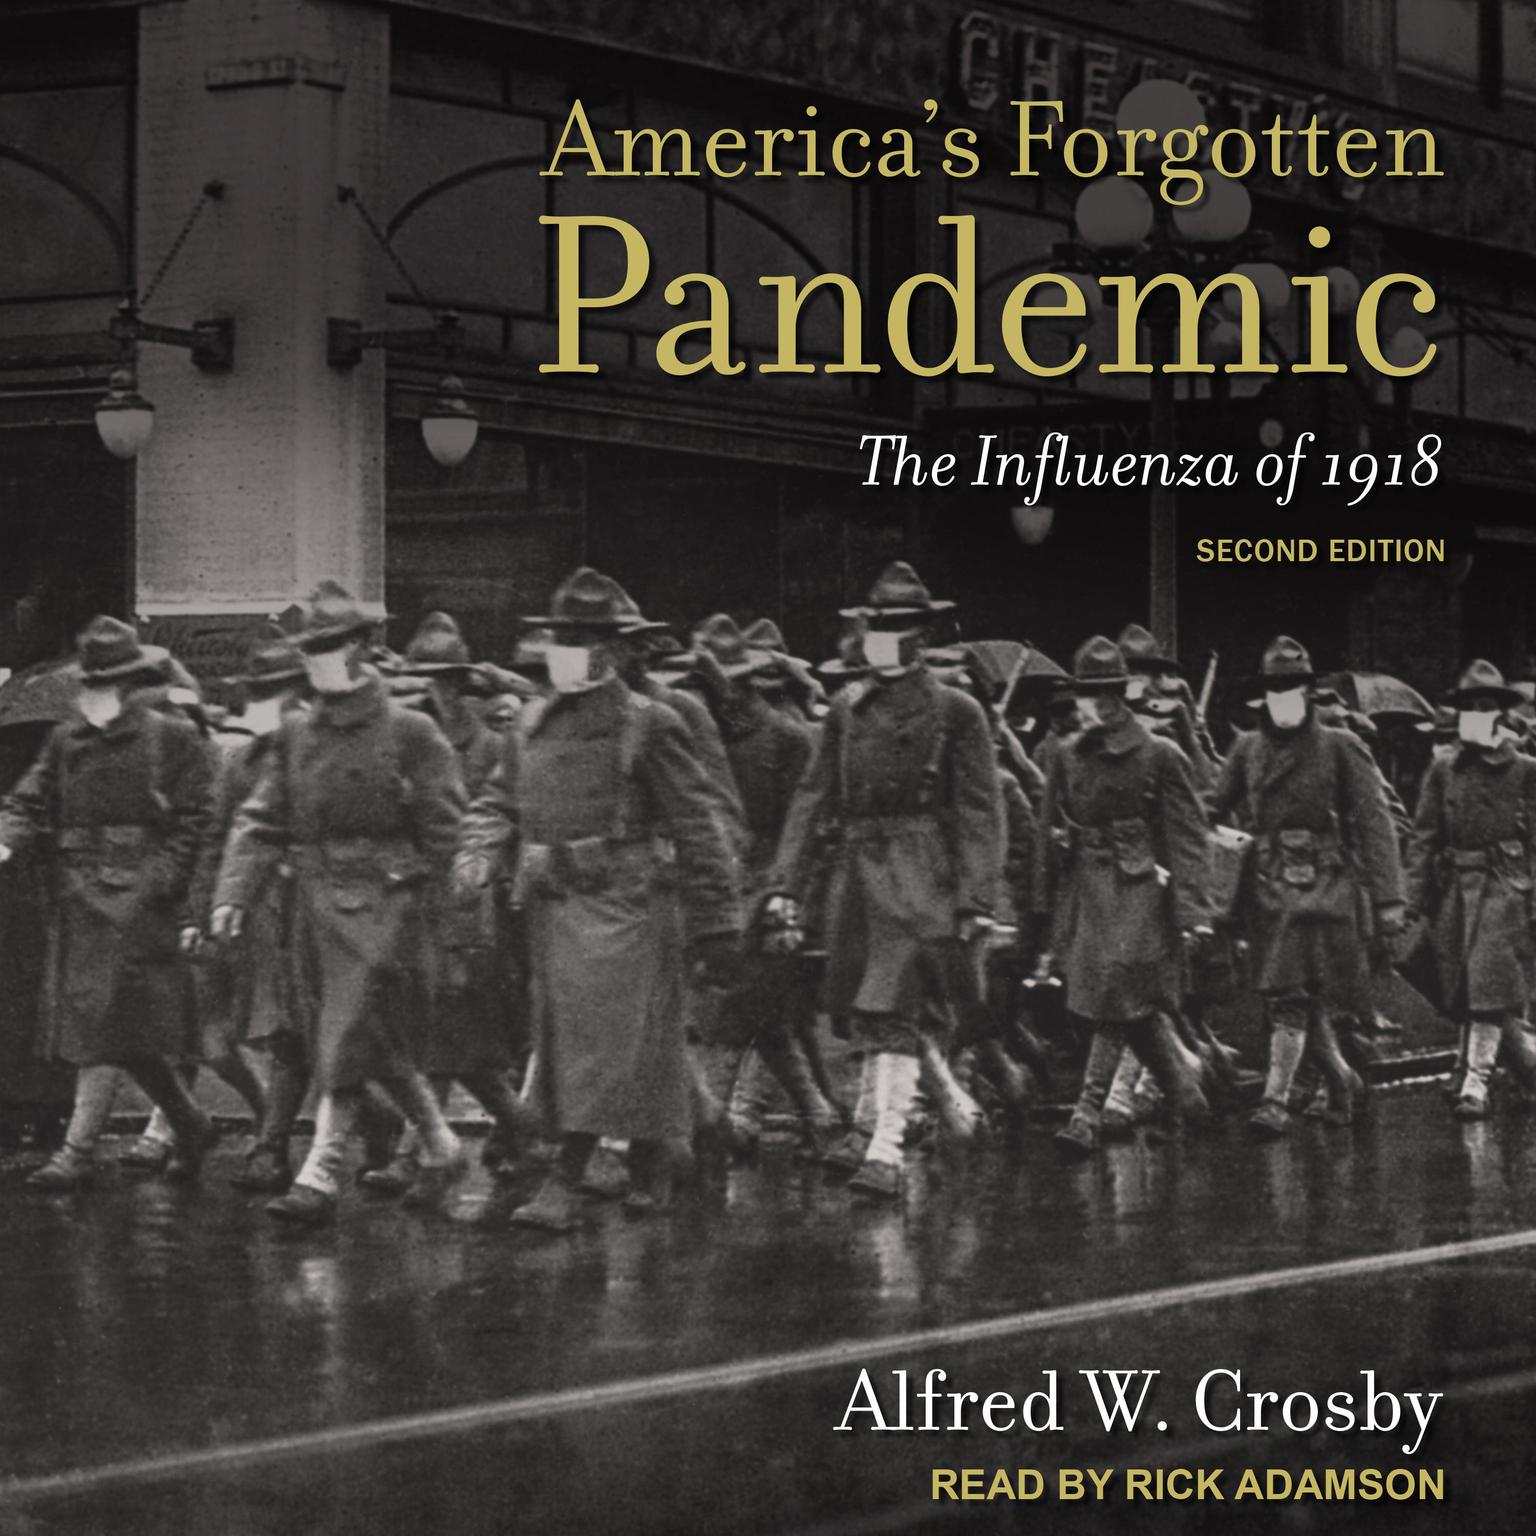 Americas Forgotten Pandemic: The Influenza of 1918, Second Edition Audiobook, by Afred W. Crosby